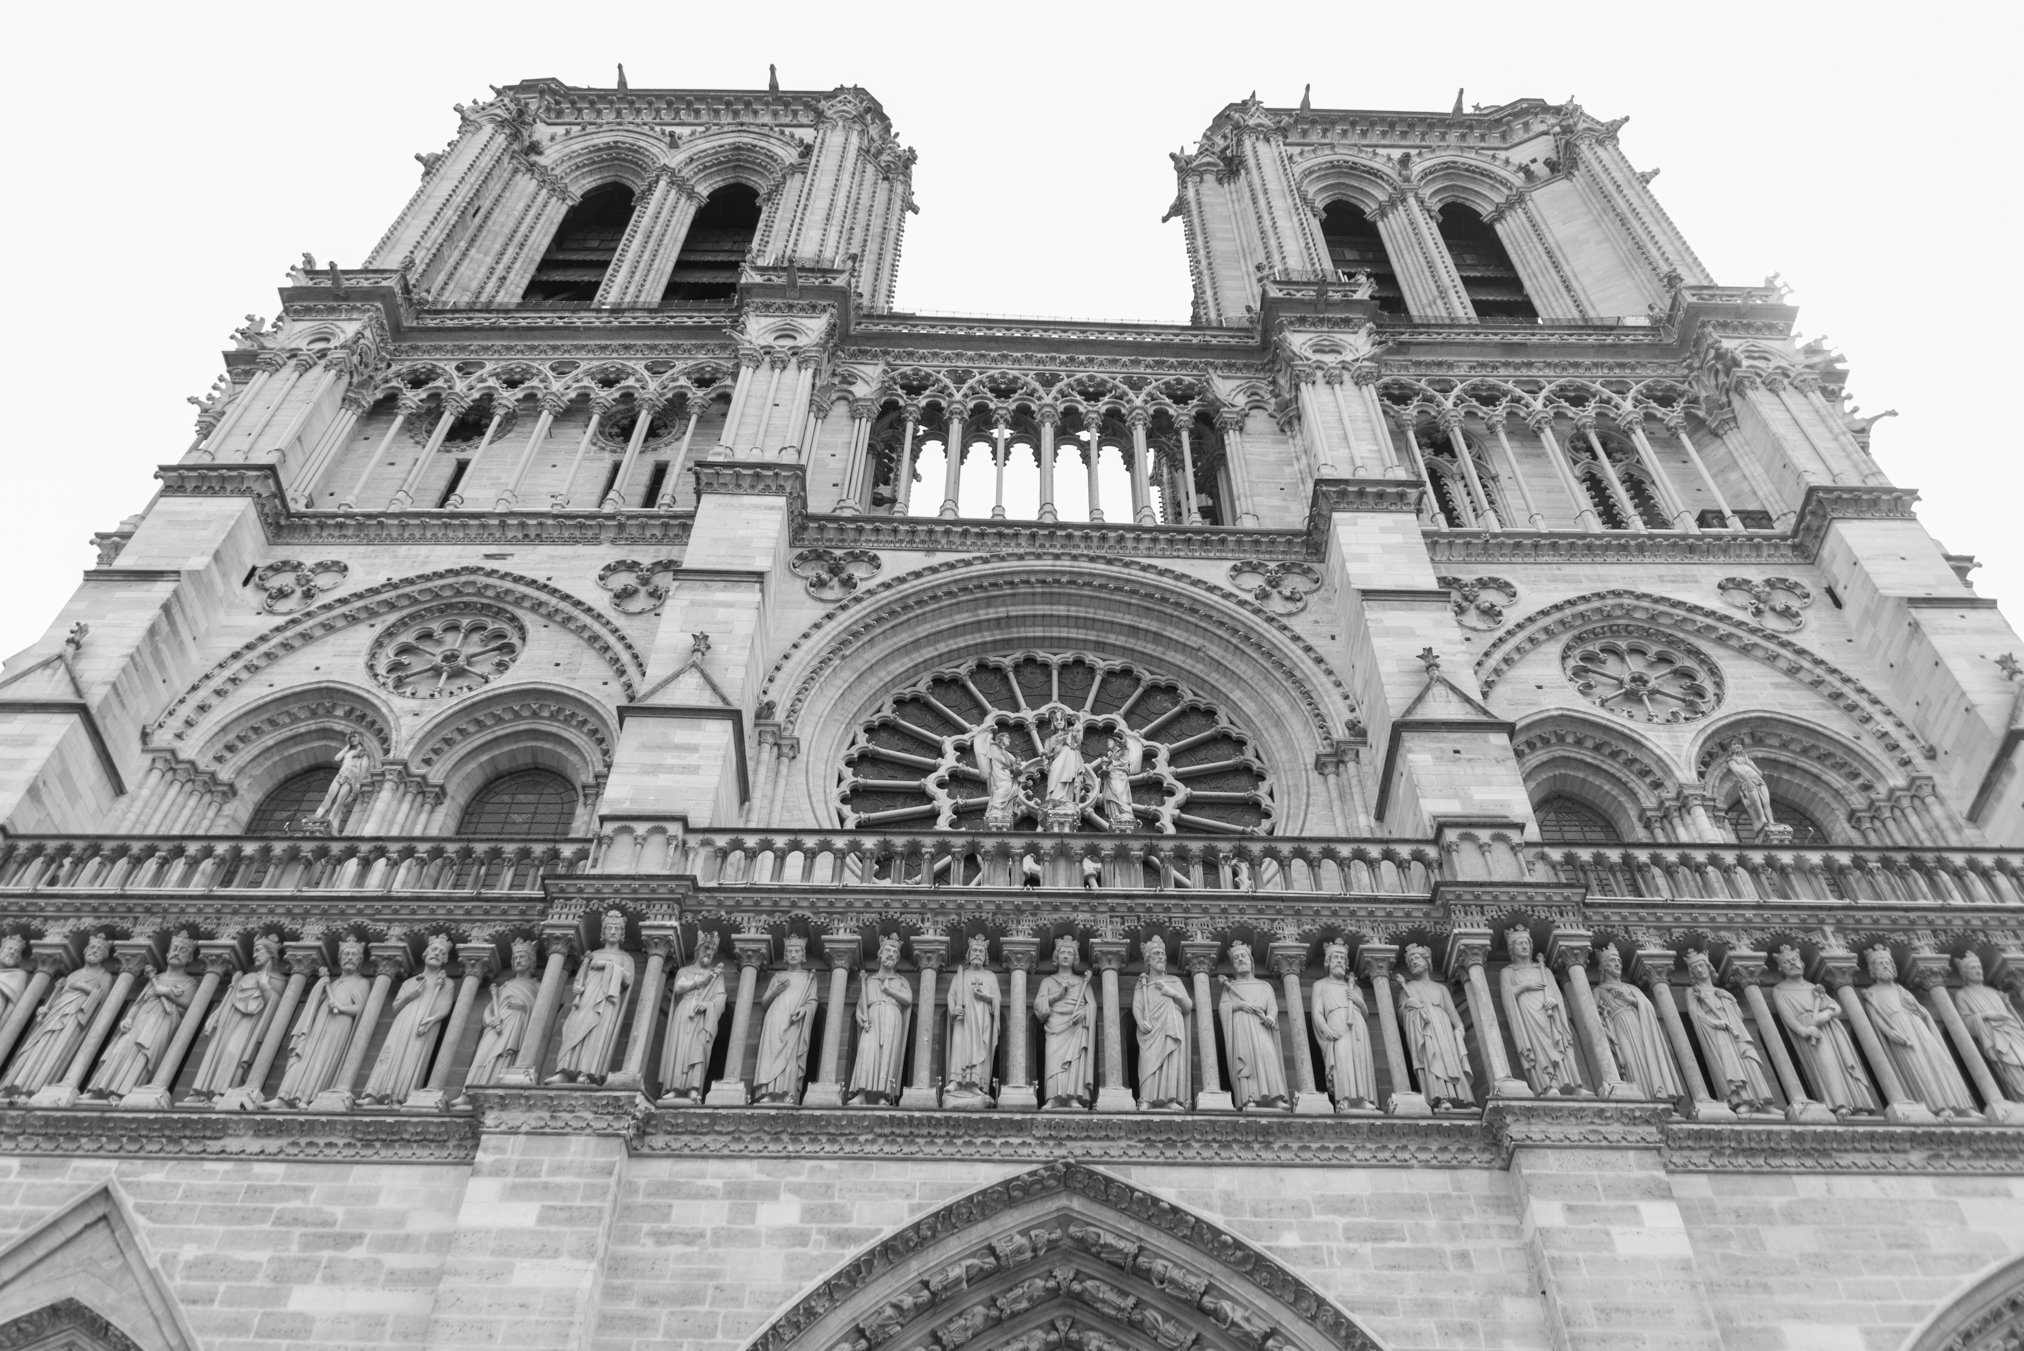 Notre Dame De Paris The Gothic Cathedral On Ile La Cite In Was Novels Real Main Protagonist After French Revolution Of 1791 Much